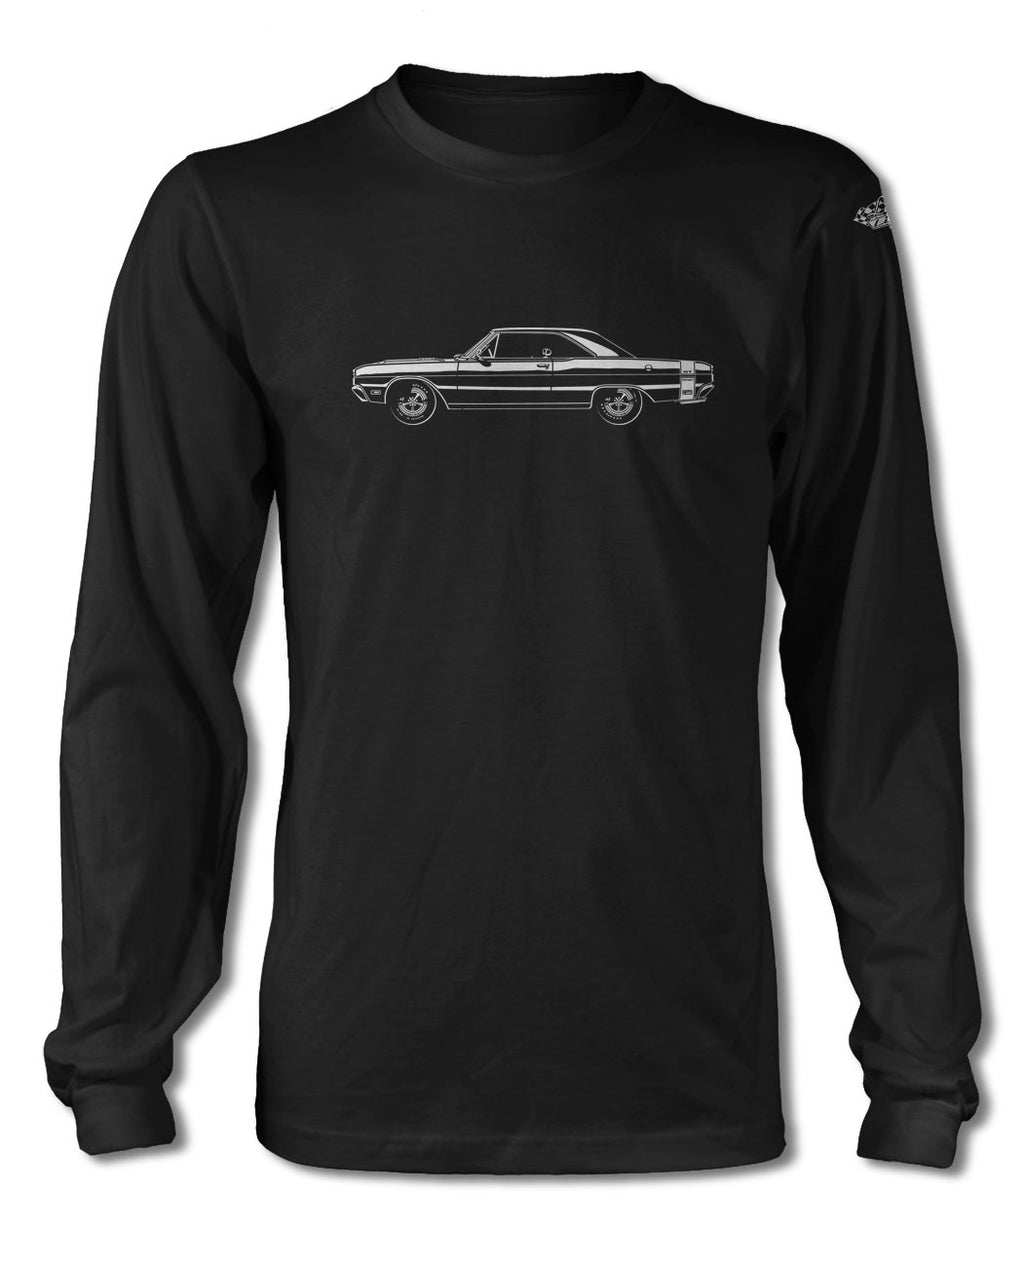 1969 Dodge Dart GTS Coupe T-Shirt - Long Sleeves - Side View